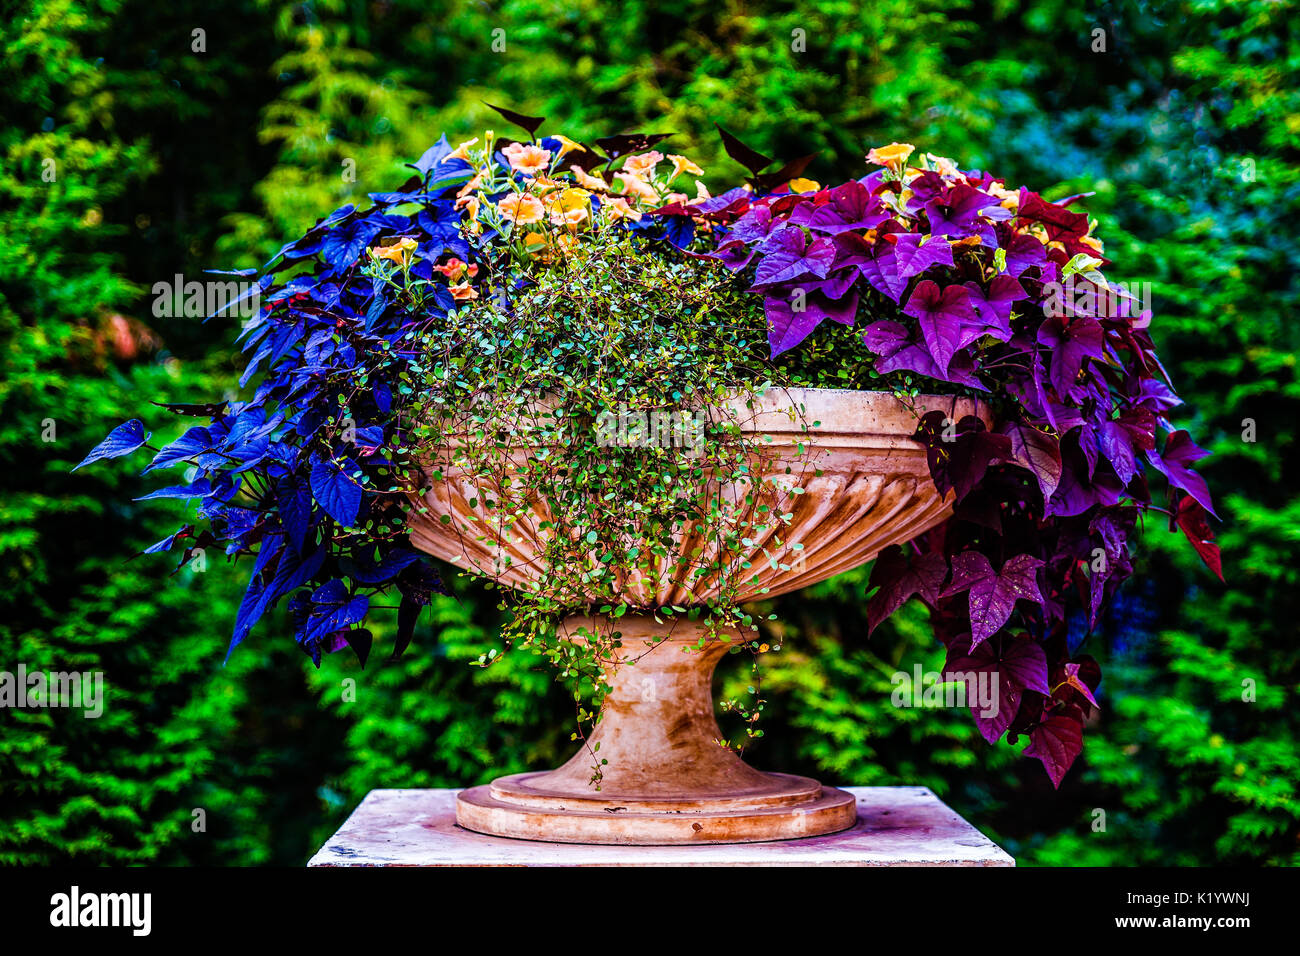 Decorative Park Urn Or Bowl Filled With Beautiful Colorful Plants